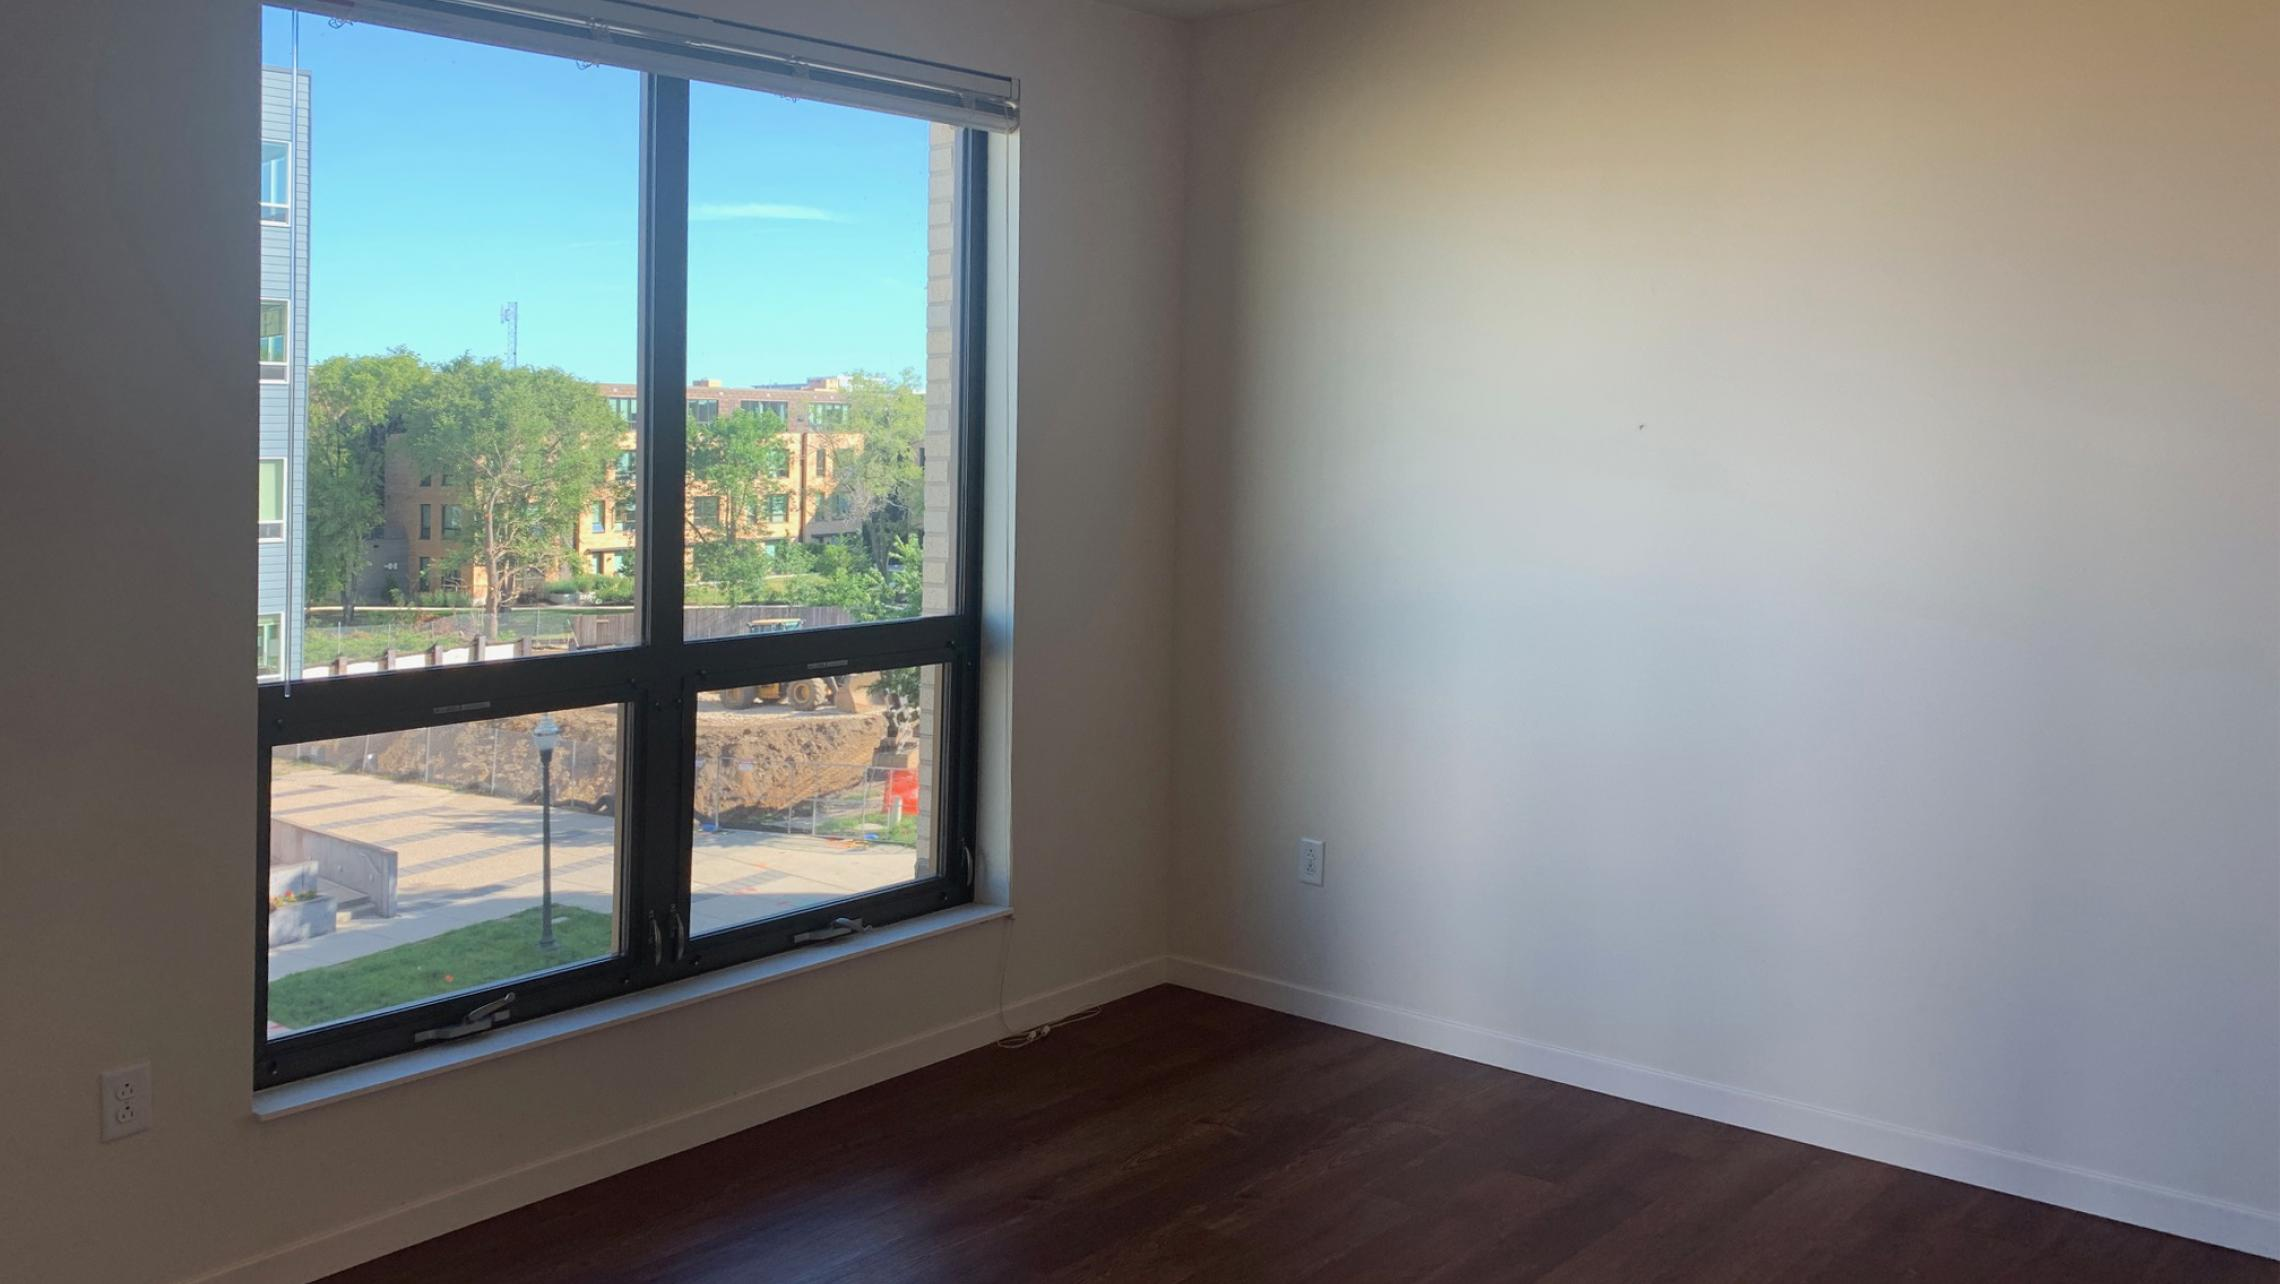 Nine-Line-at-The-Yards-Two-Bedroom-Apartment-214-Corner-Windows-Views-Stunning-Downtown-Madison-Bike-Path-Capitol-Lake-Modern-Upscale-Fitness-Gym-Dogs-Cats-Balcony-Patio